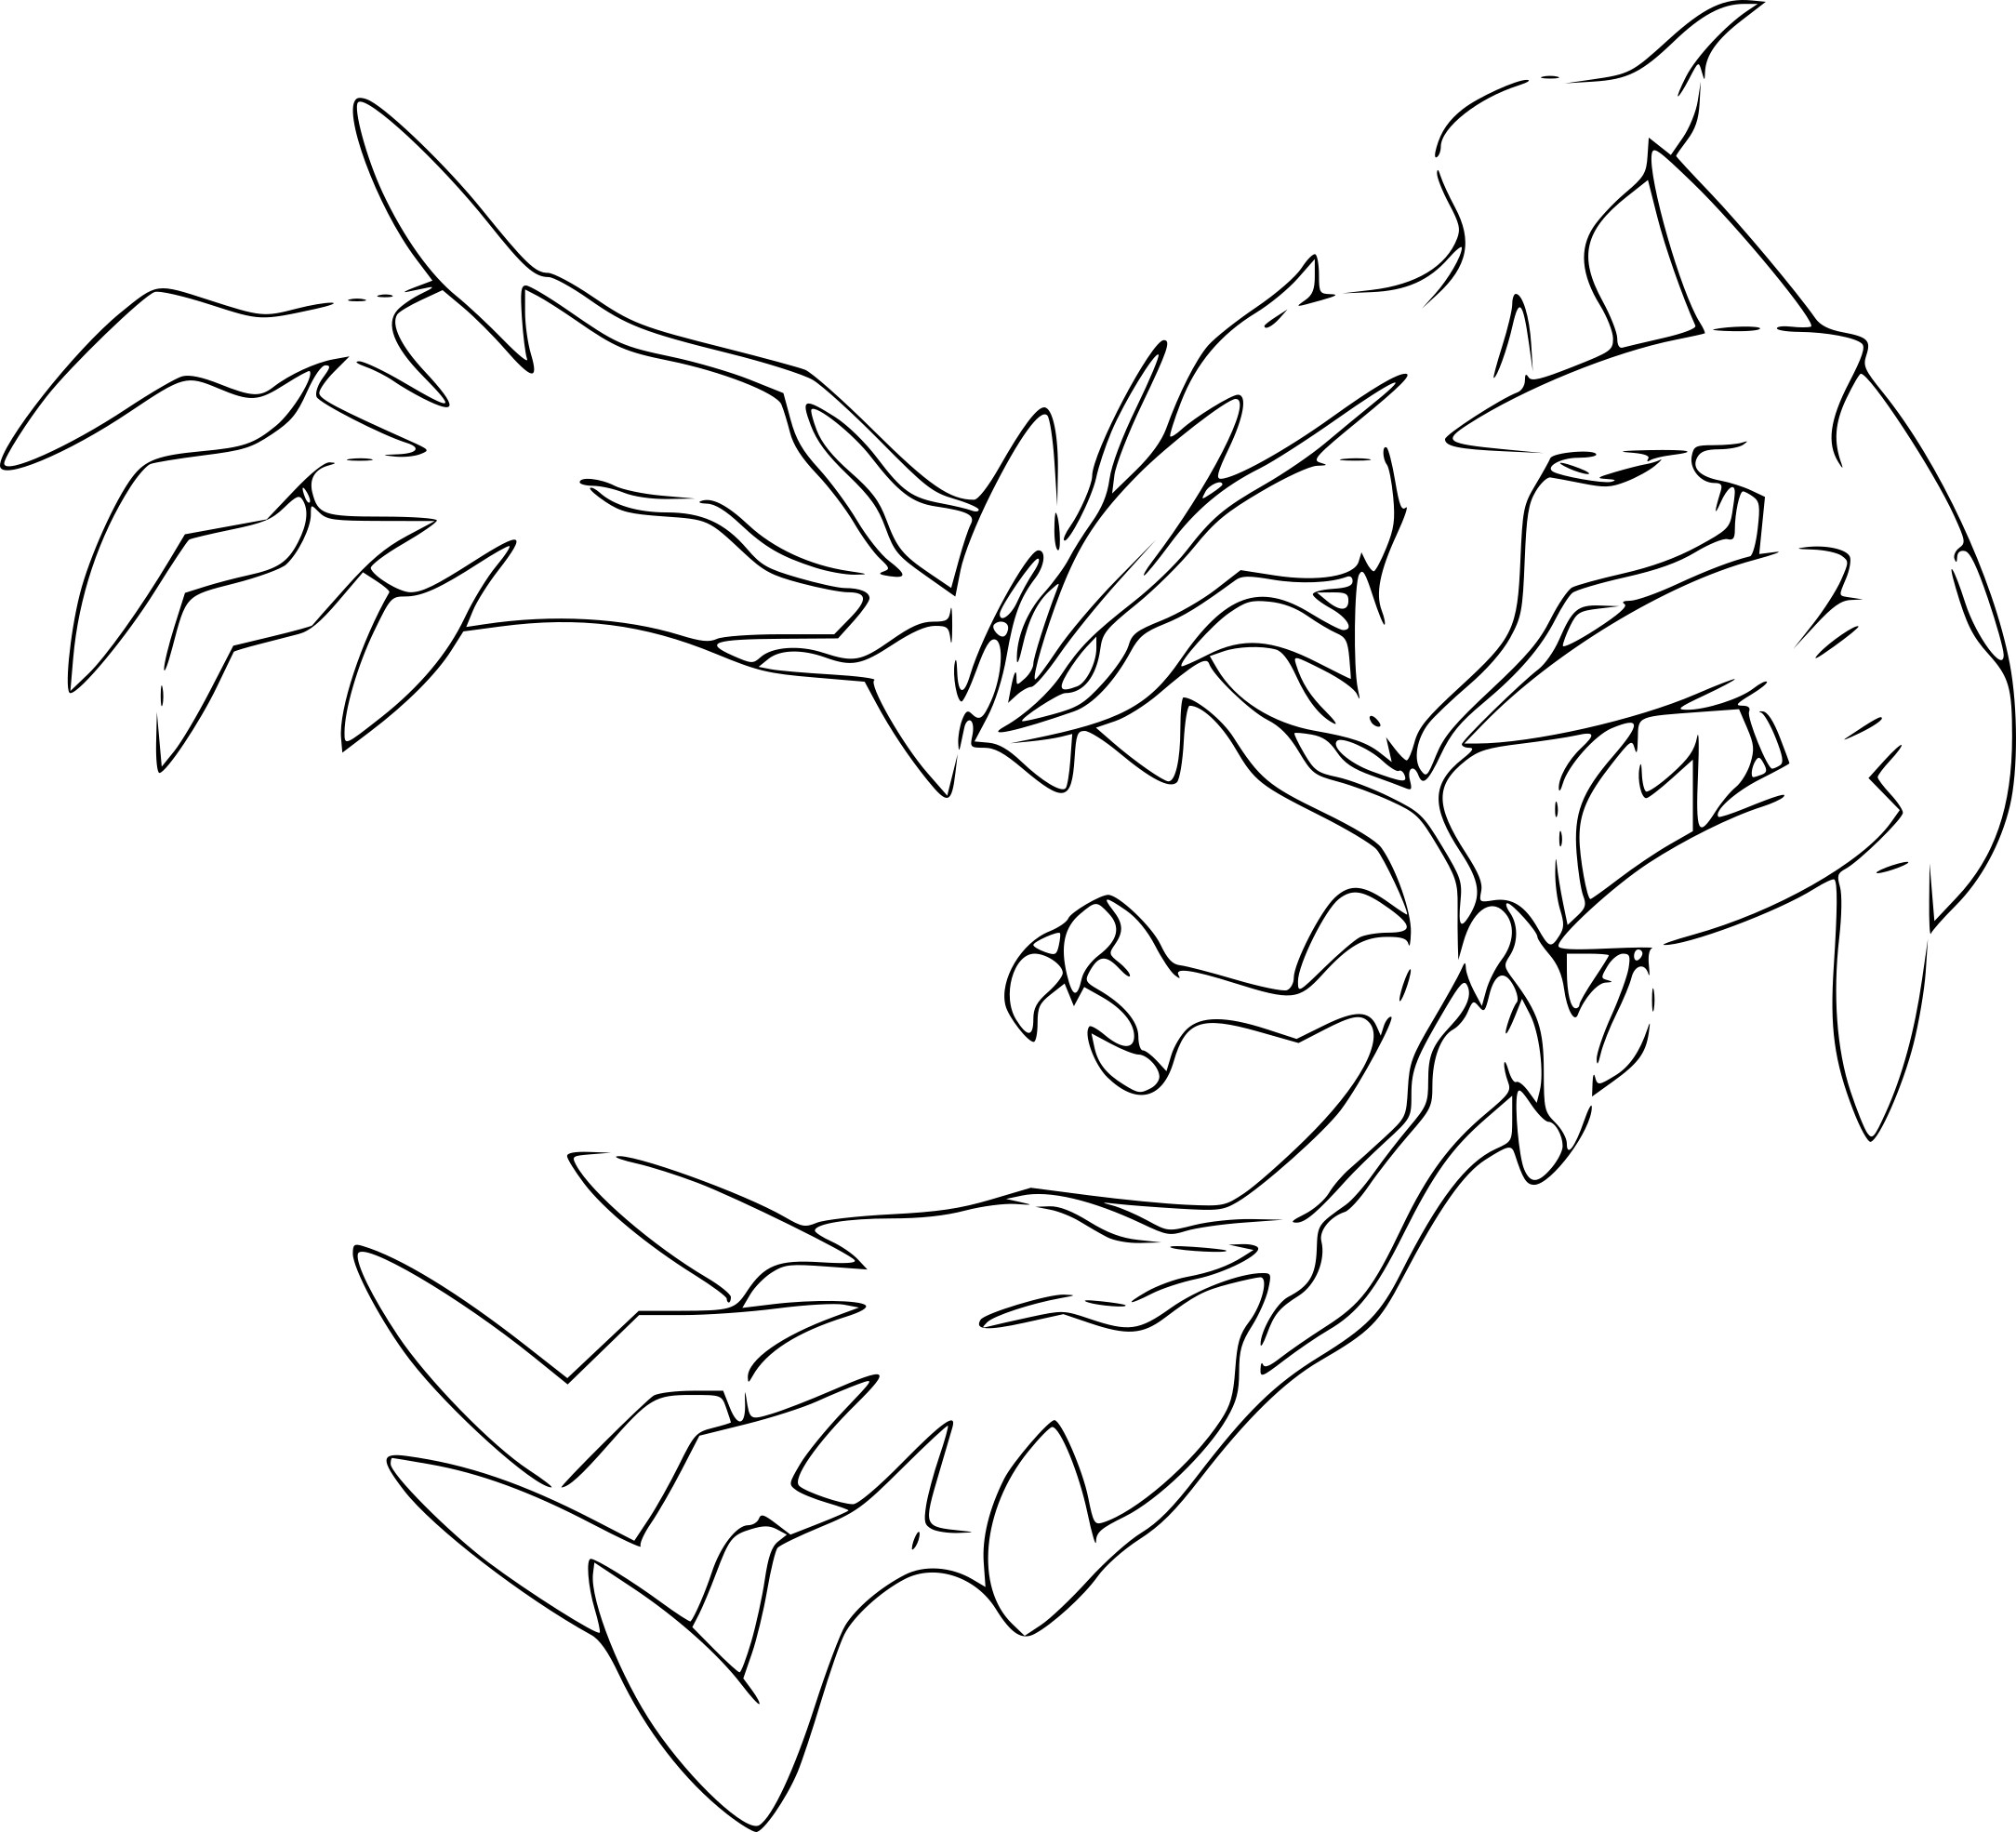 Luxe coloriage pokemon mega jungko for Pokemon yveltal coloring pages